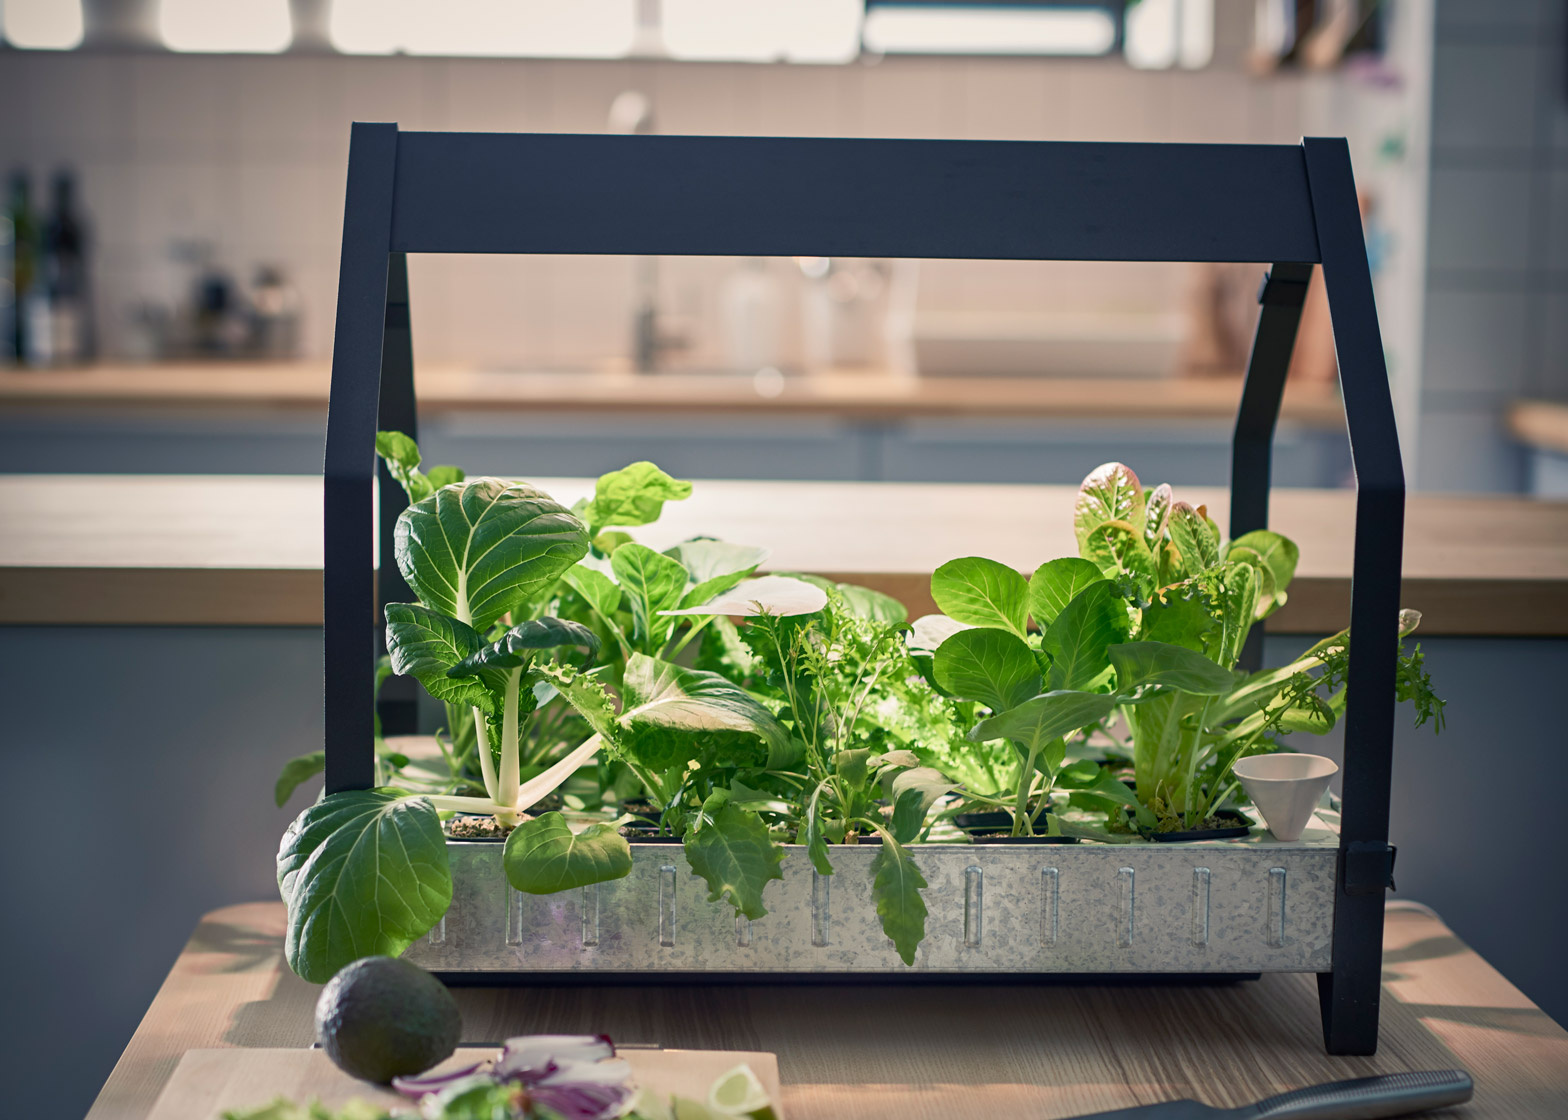 Ikea's Hydroponic System Allows You To Grow Vegetables